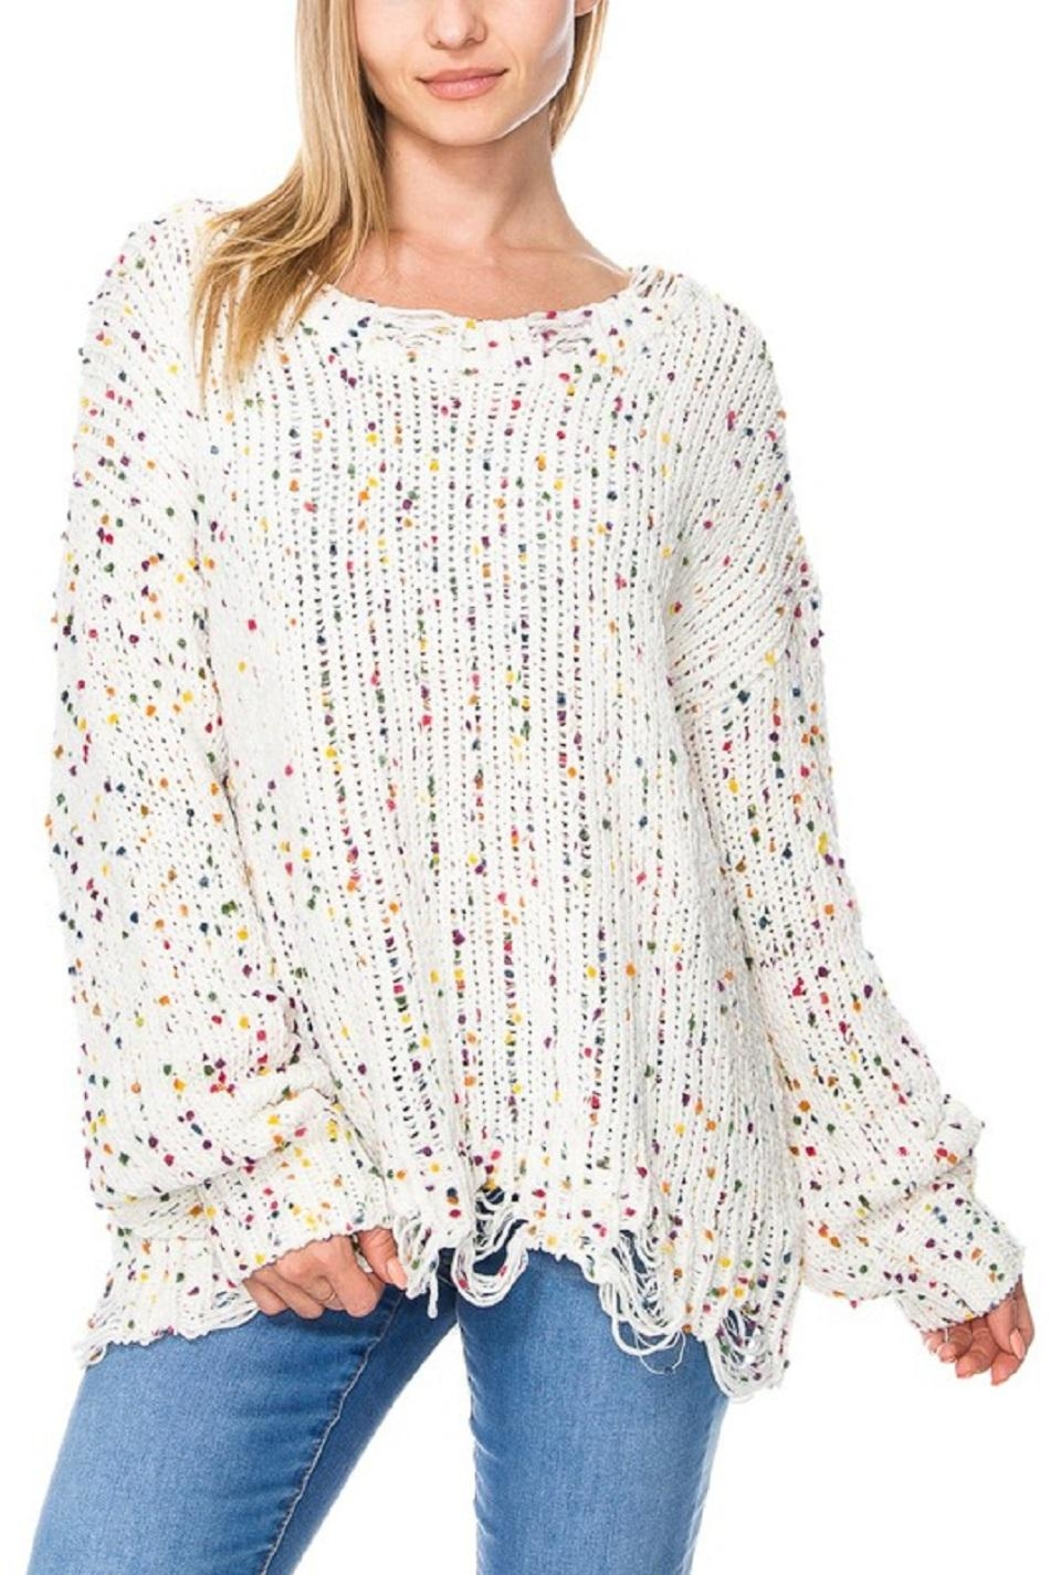 Miracle City Distressed-Hem Confetti  Sweater - Main Image